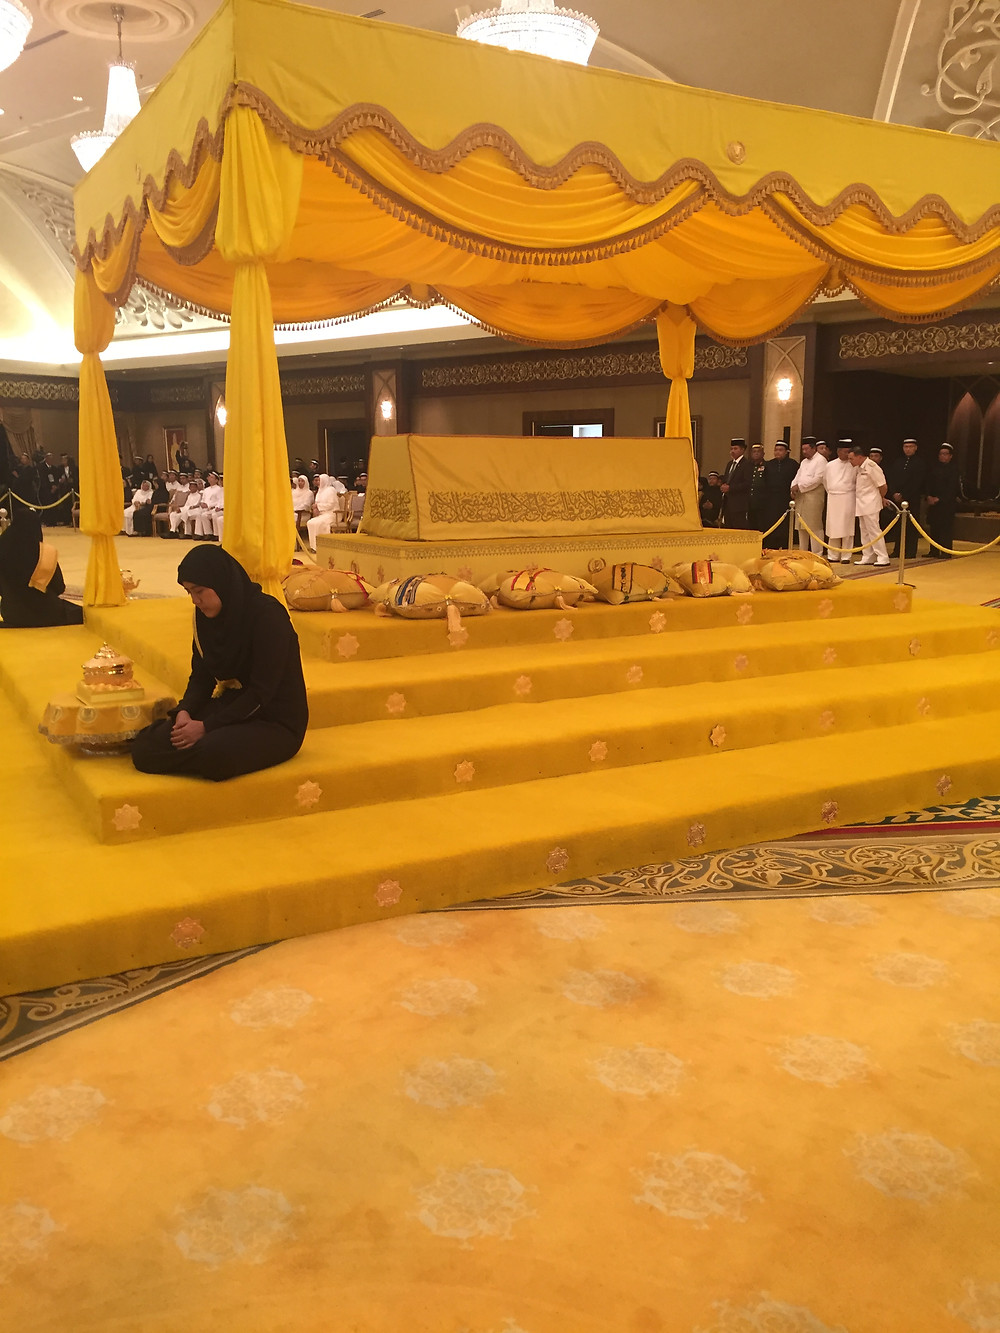 Almarhum Sultan Abdul Halim Mu'adzam Shah, lying-in-state at the Balai Penghadapan, Istana Anak Bukit Alor Star 12 September 2017.